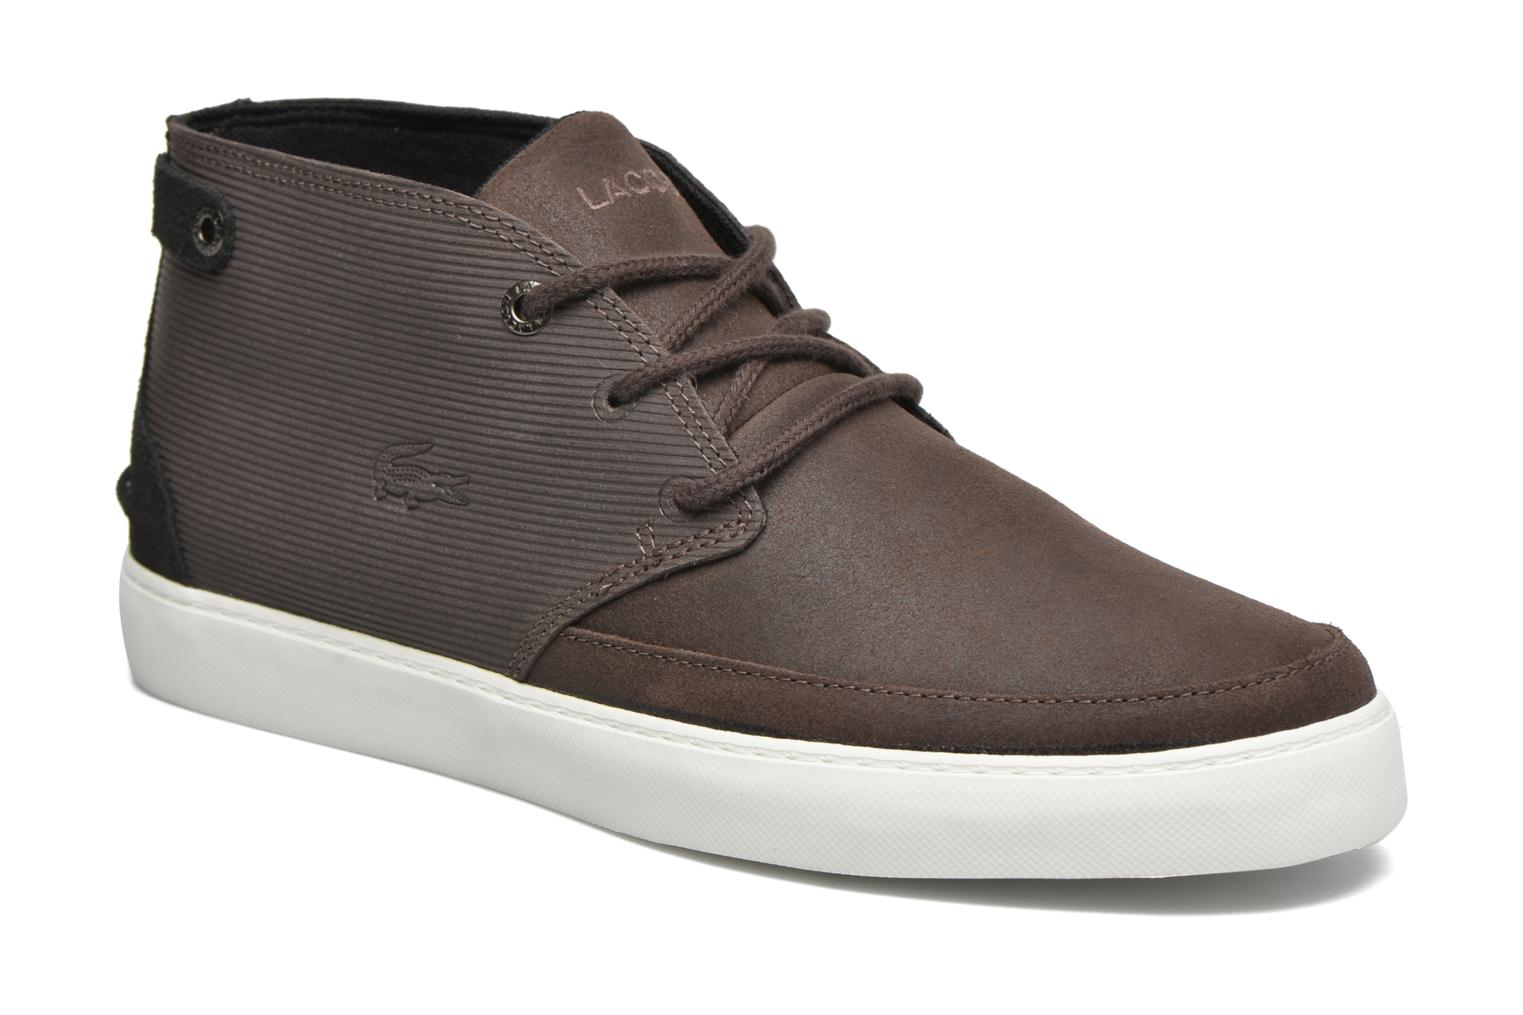 Baskets Lacoste Clavel M 316 1 Marron vue détail/paire